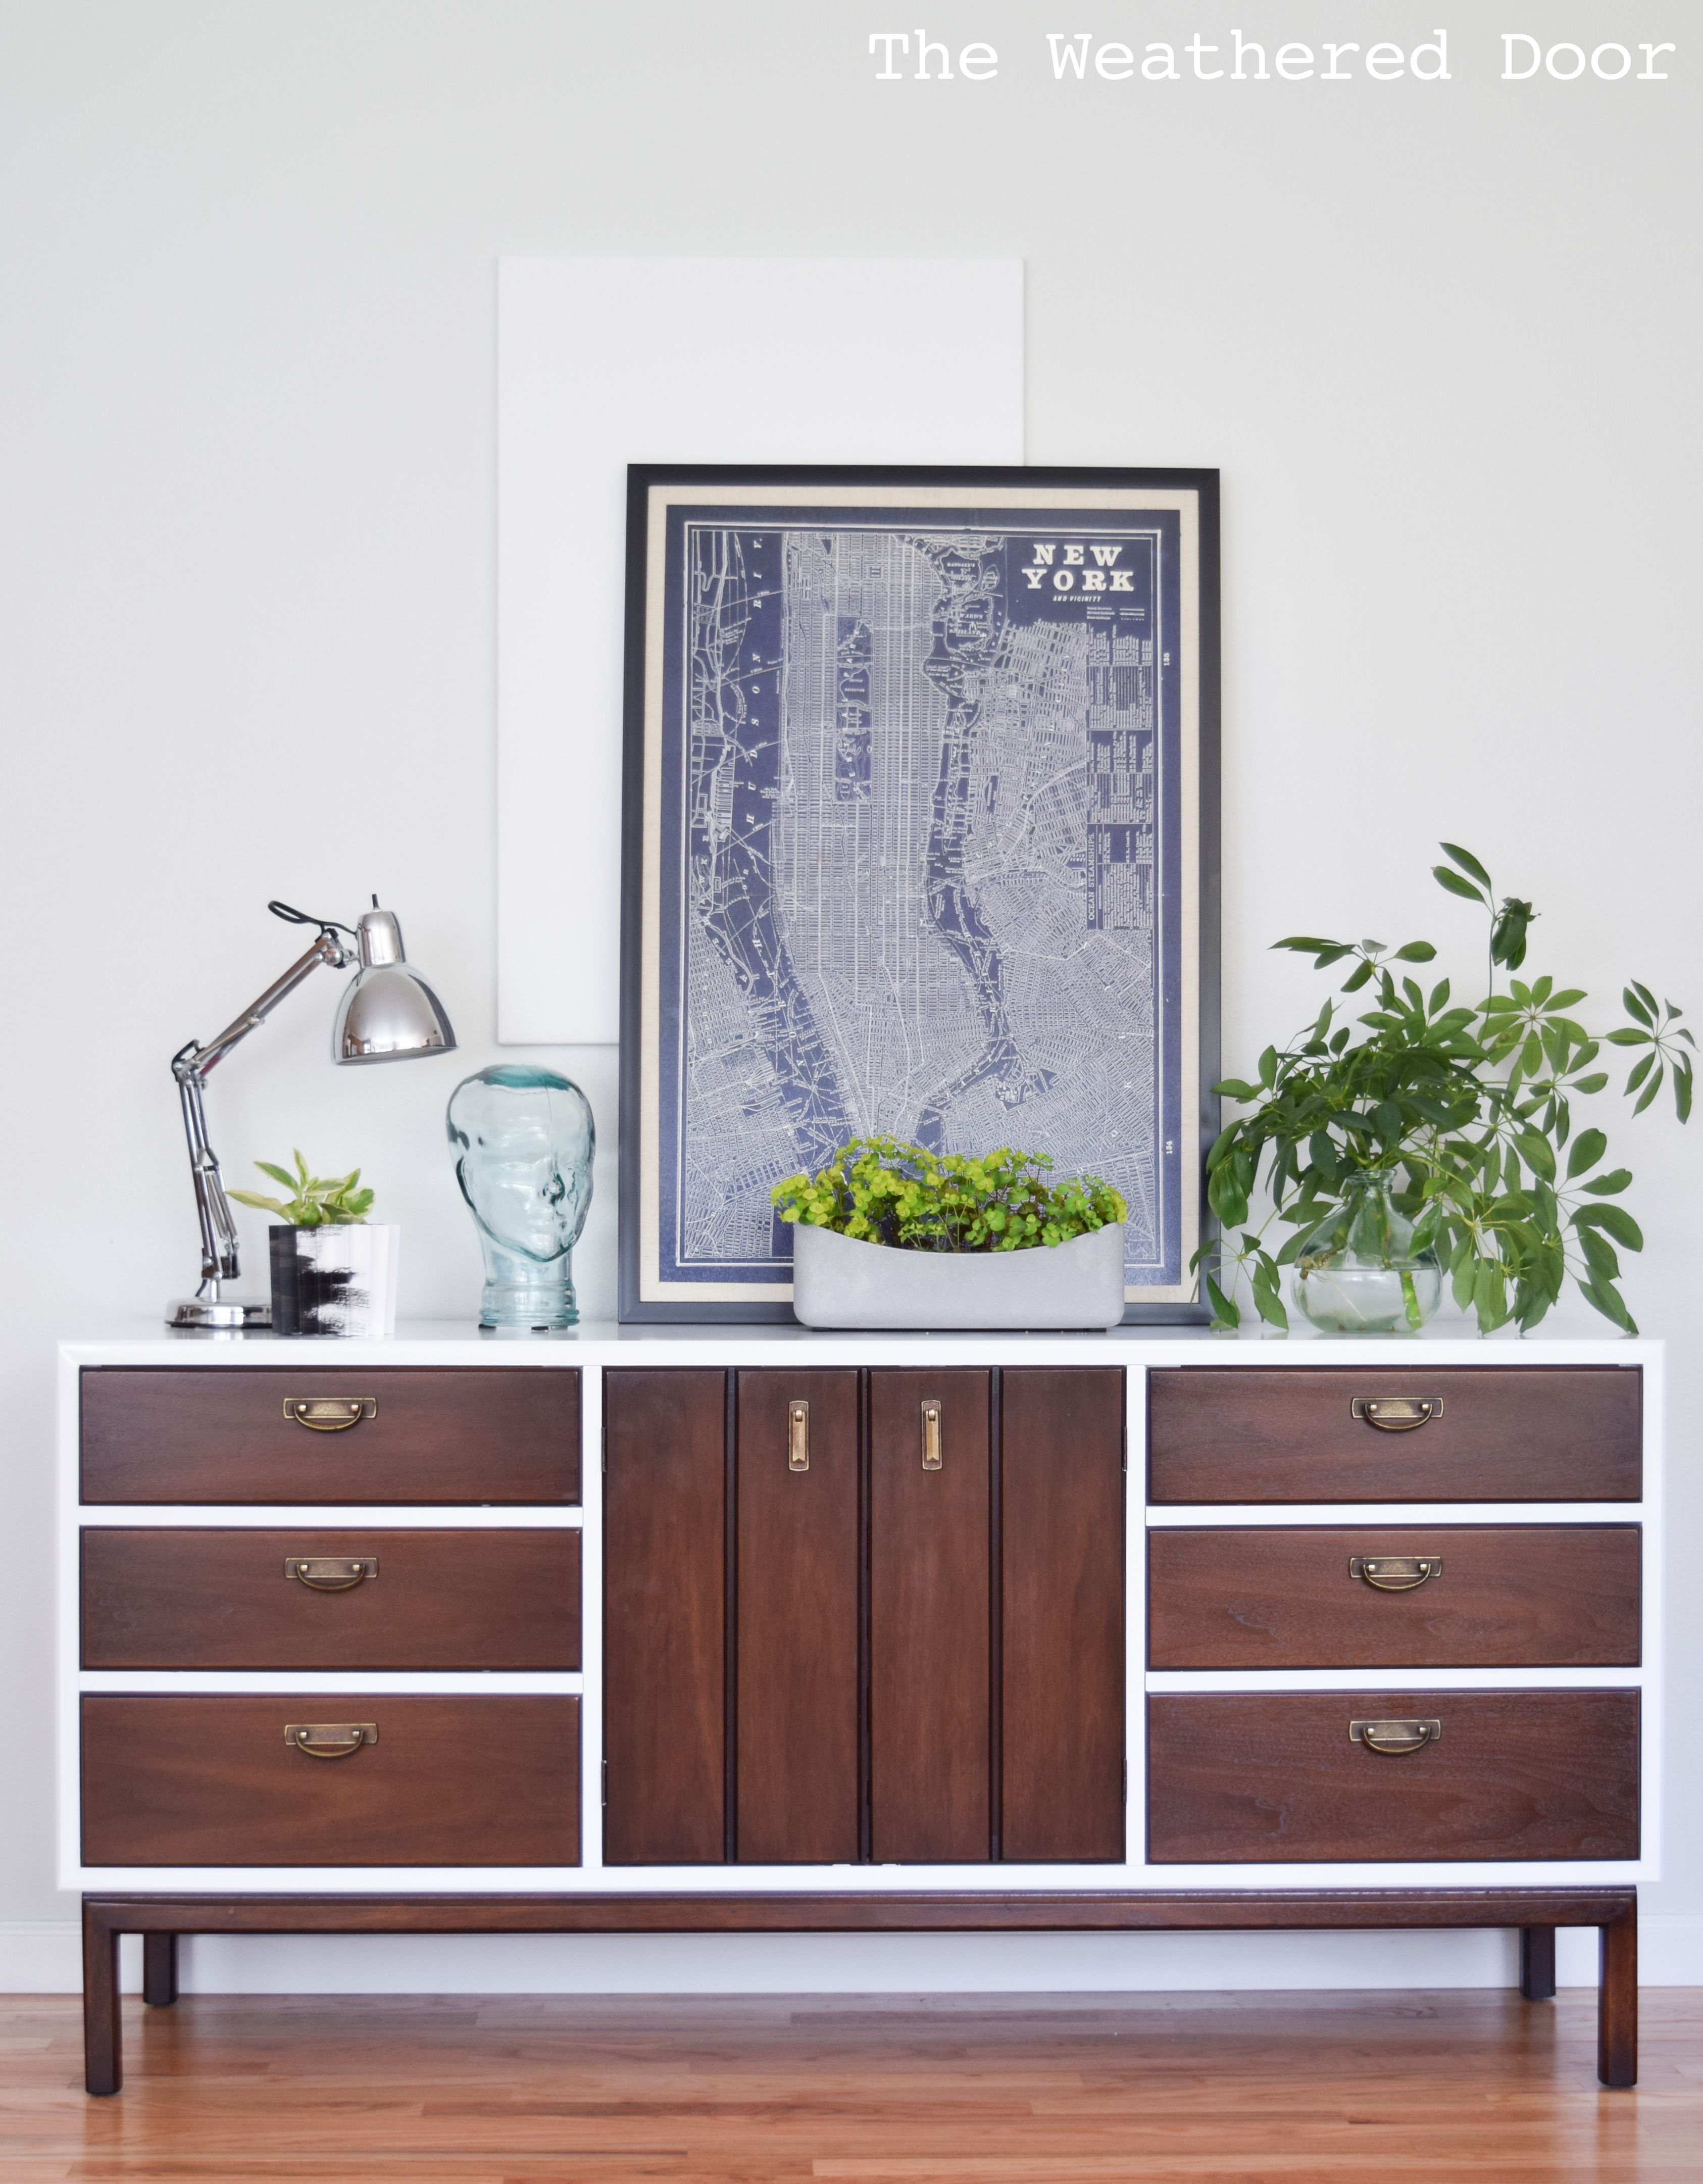 diy furniture refinishing projects. DIY Home Decor Projects And Ideas Diy Furniture Refinishing